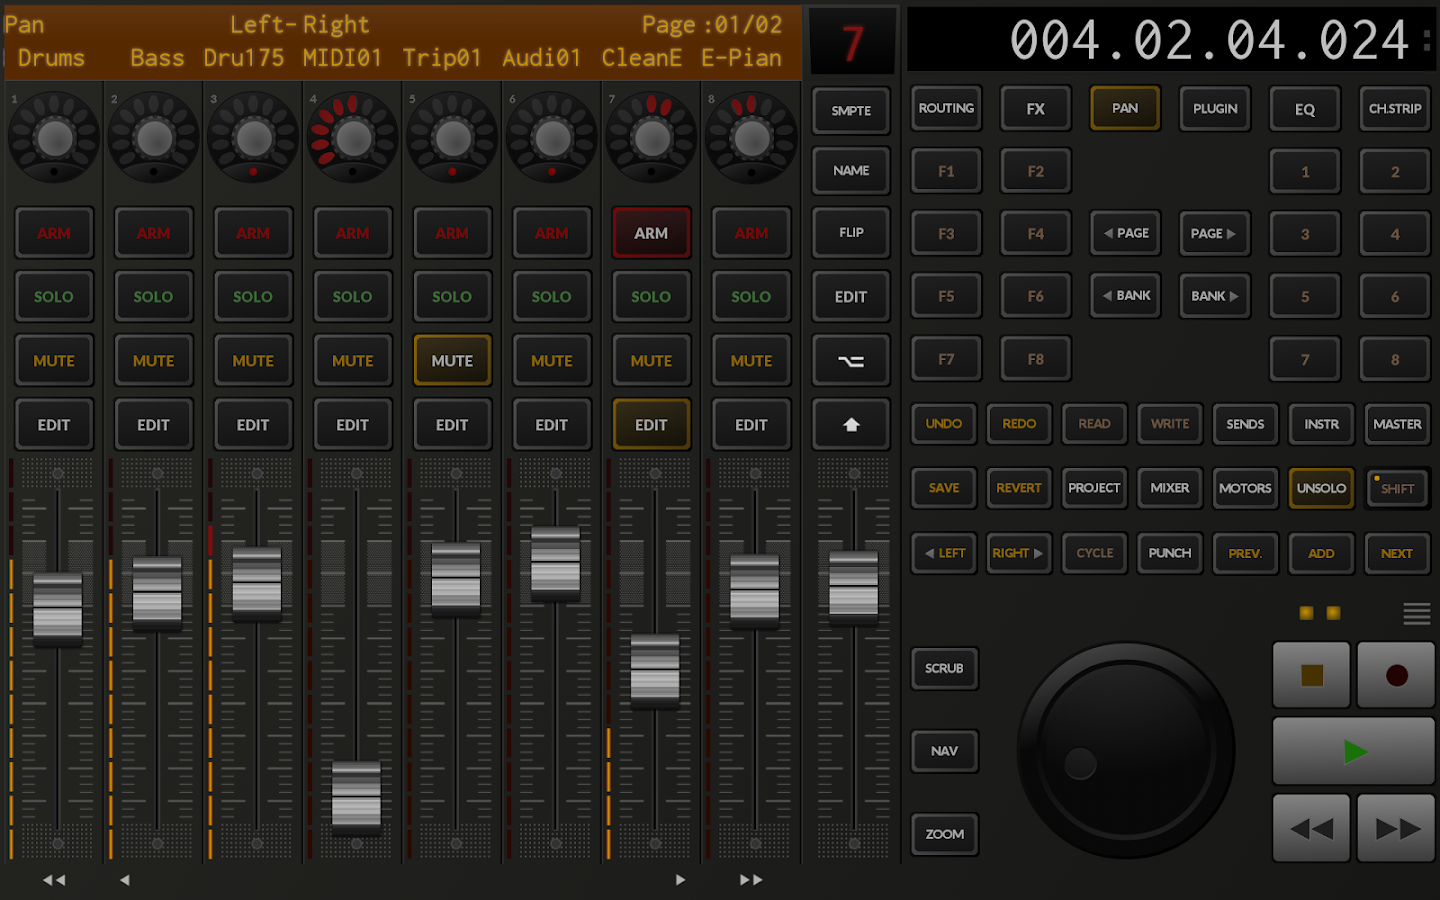 TouchDAW Screenshot 6